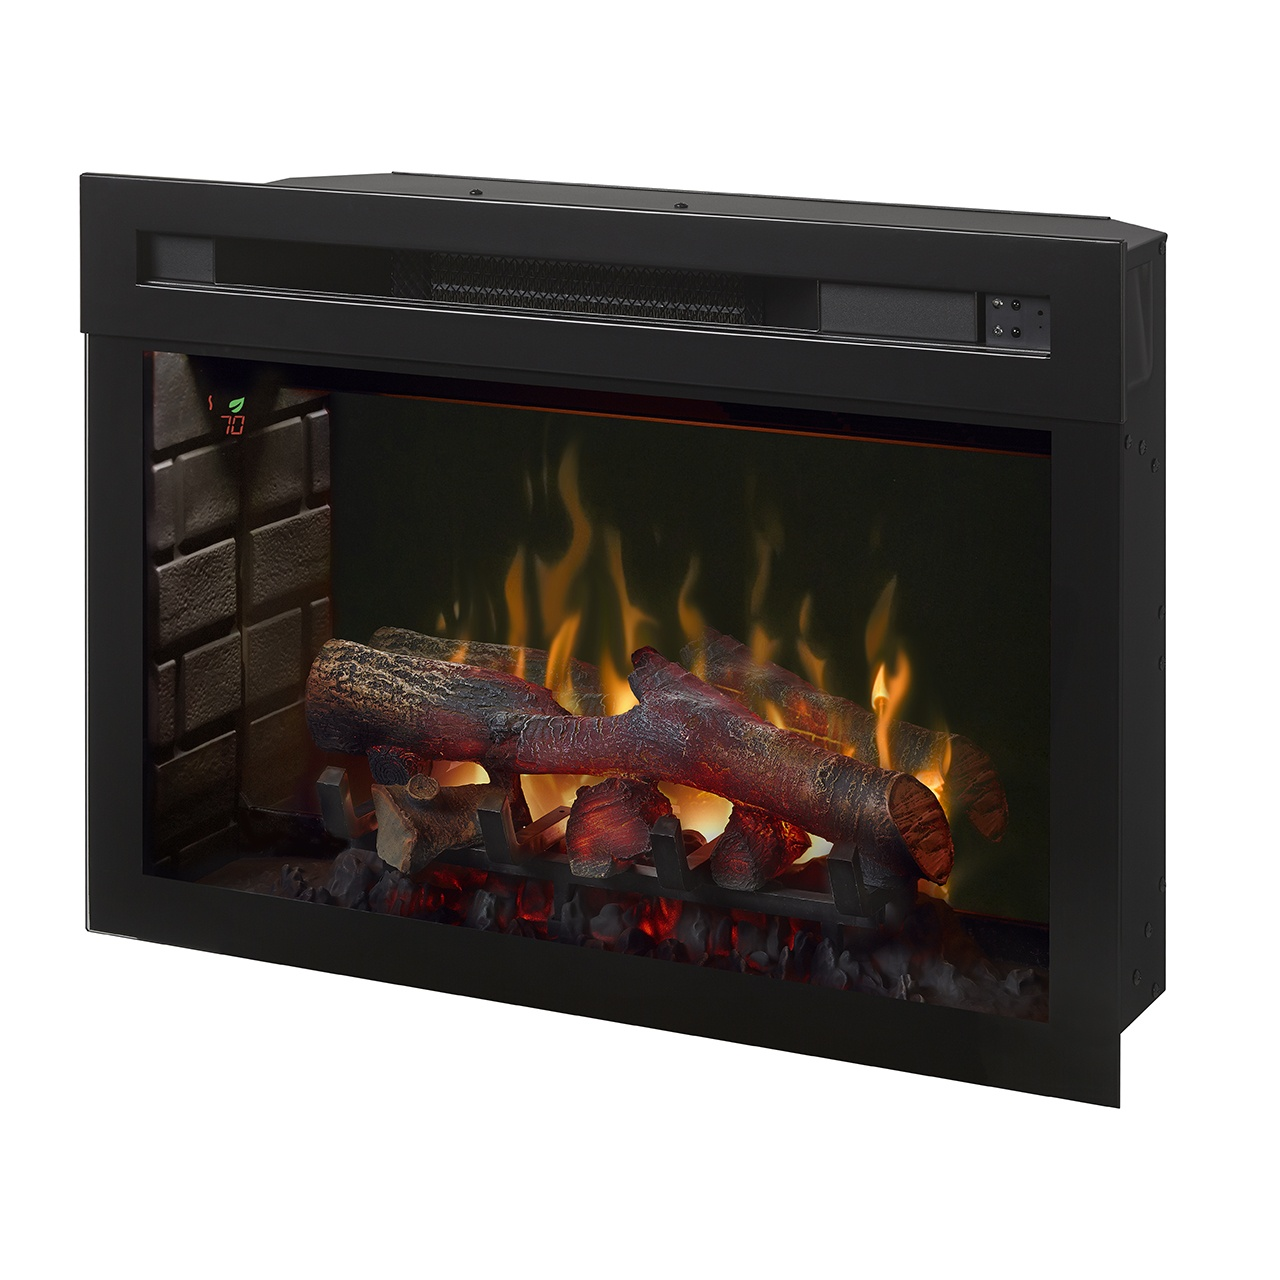 dimplex 25 inch electric fireplace insert with logs and flames turned on